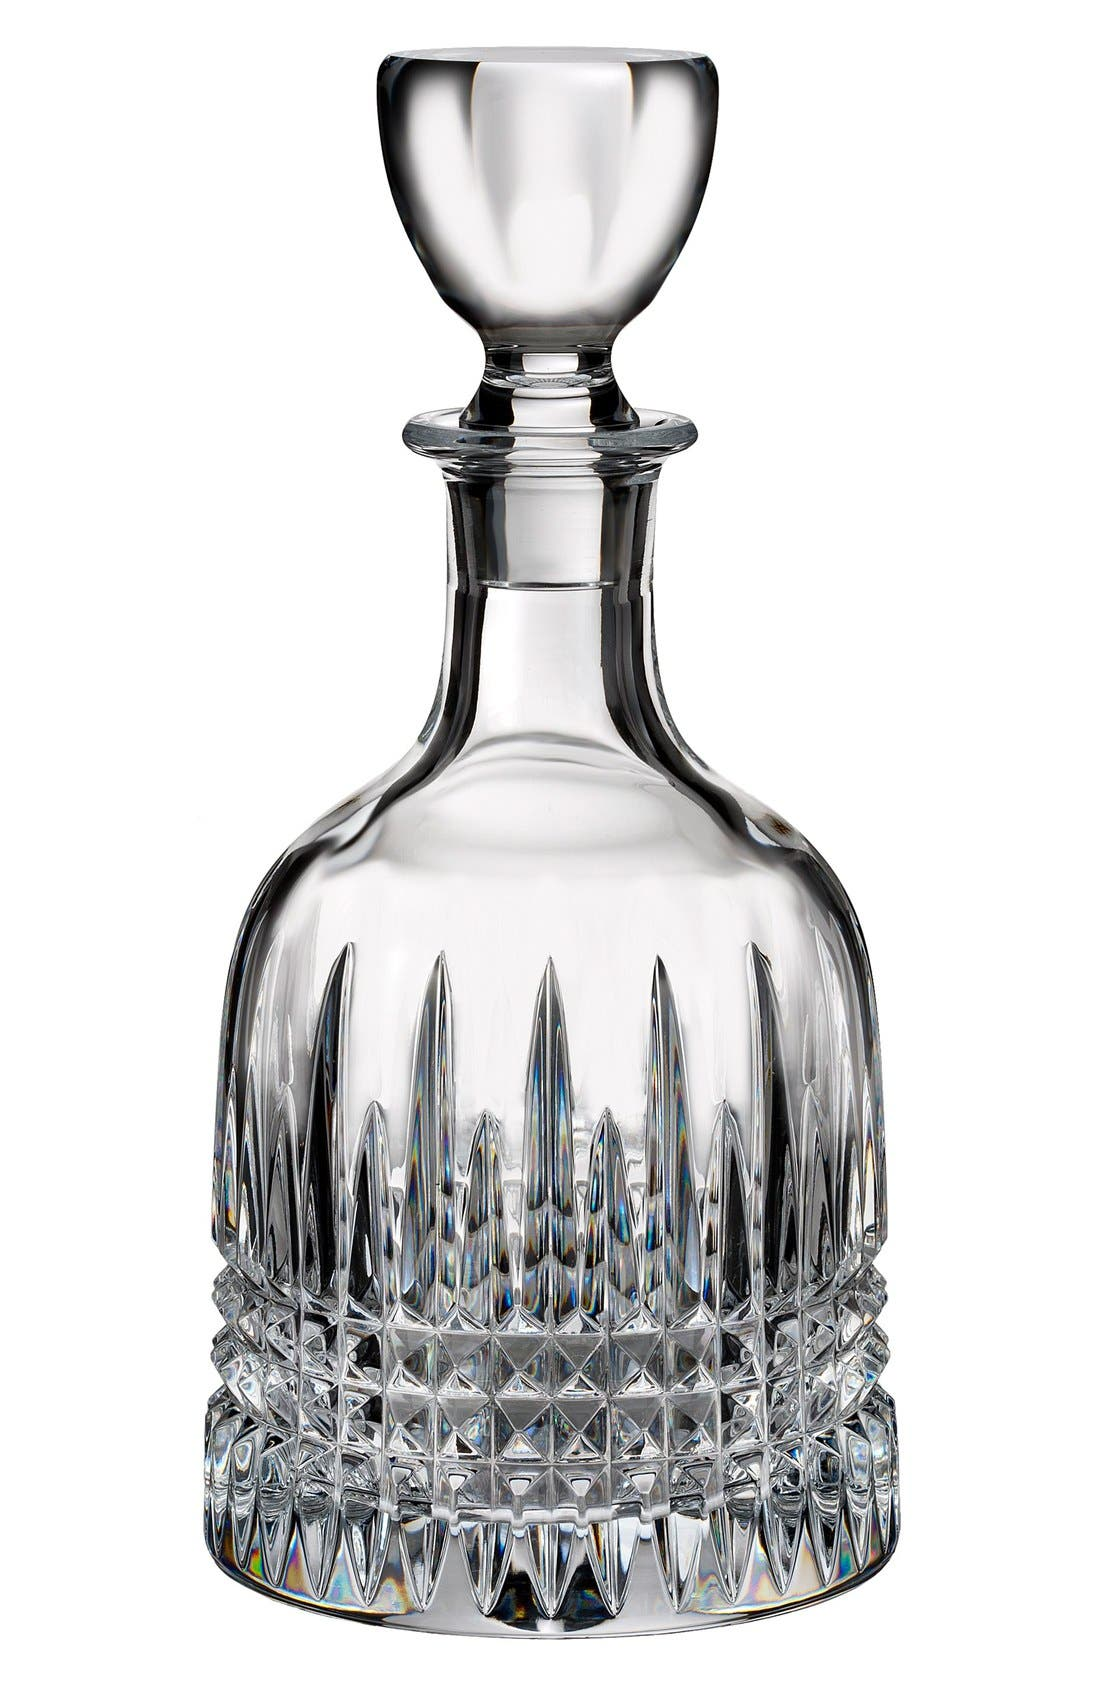 Waterford 'Lismore Diamond' Lead Crystal Decanter & Stopper